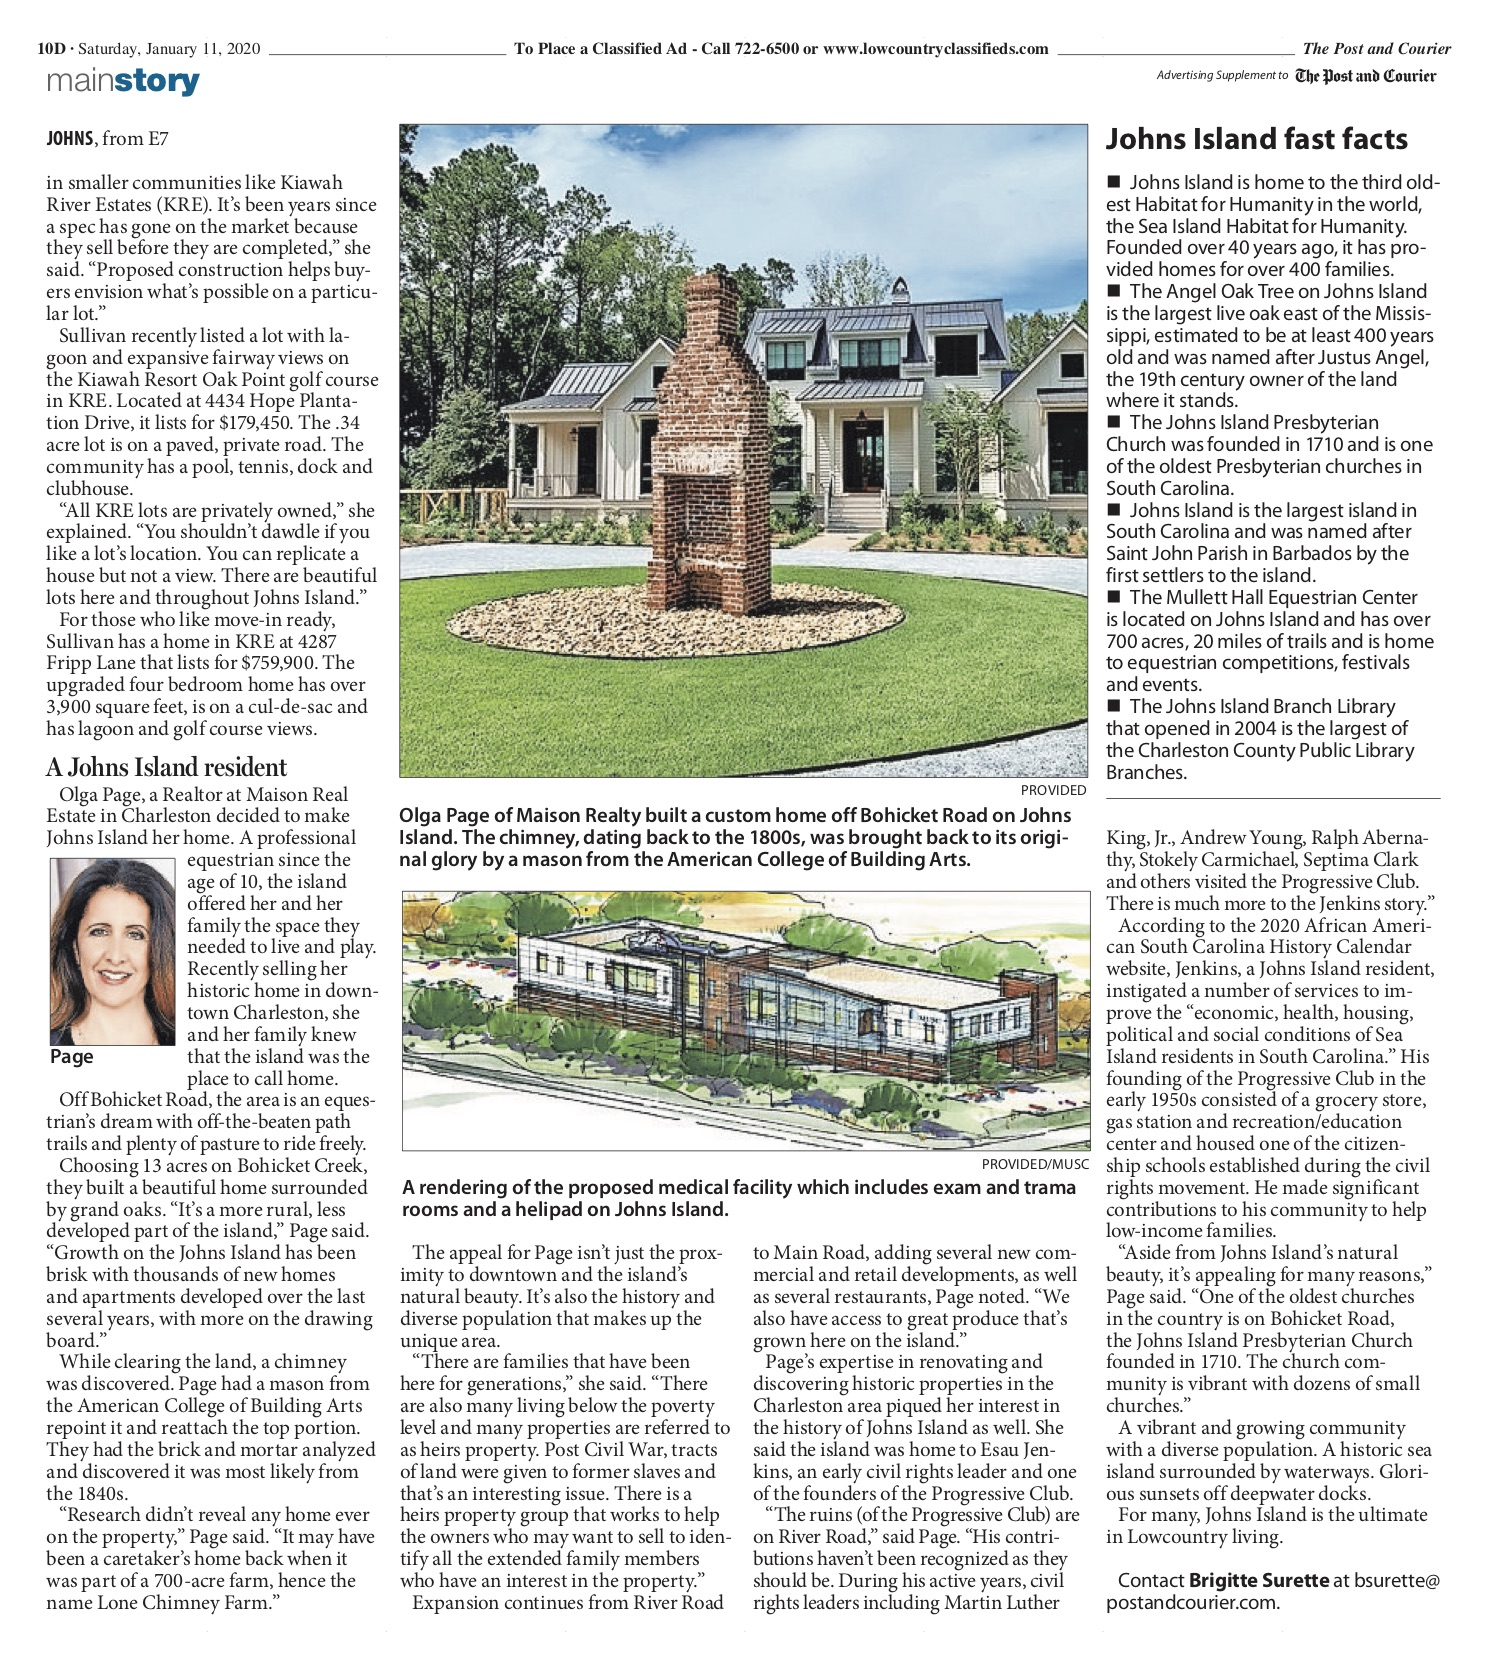 Olga Page featured in article on Johns Island in Post and Courier